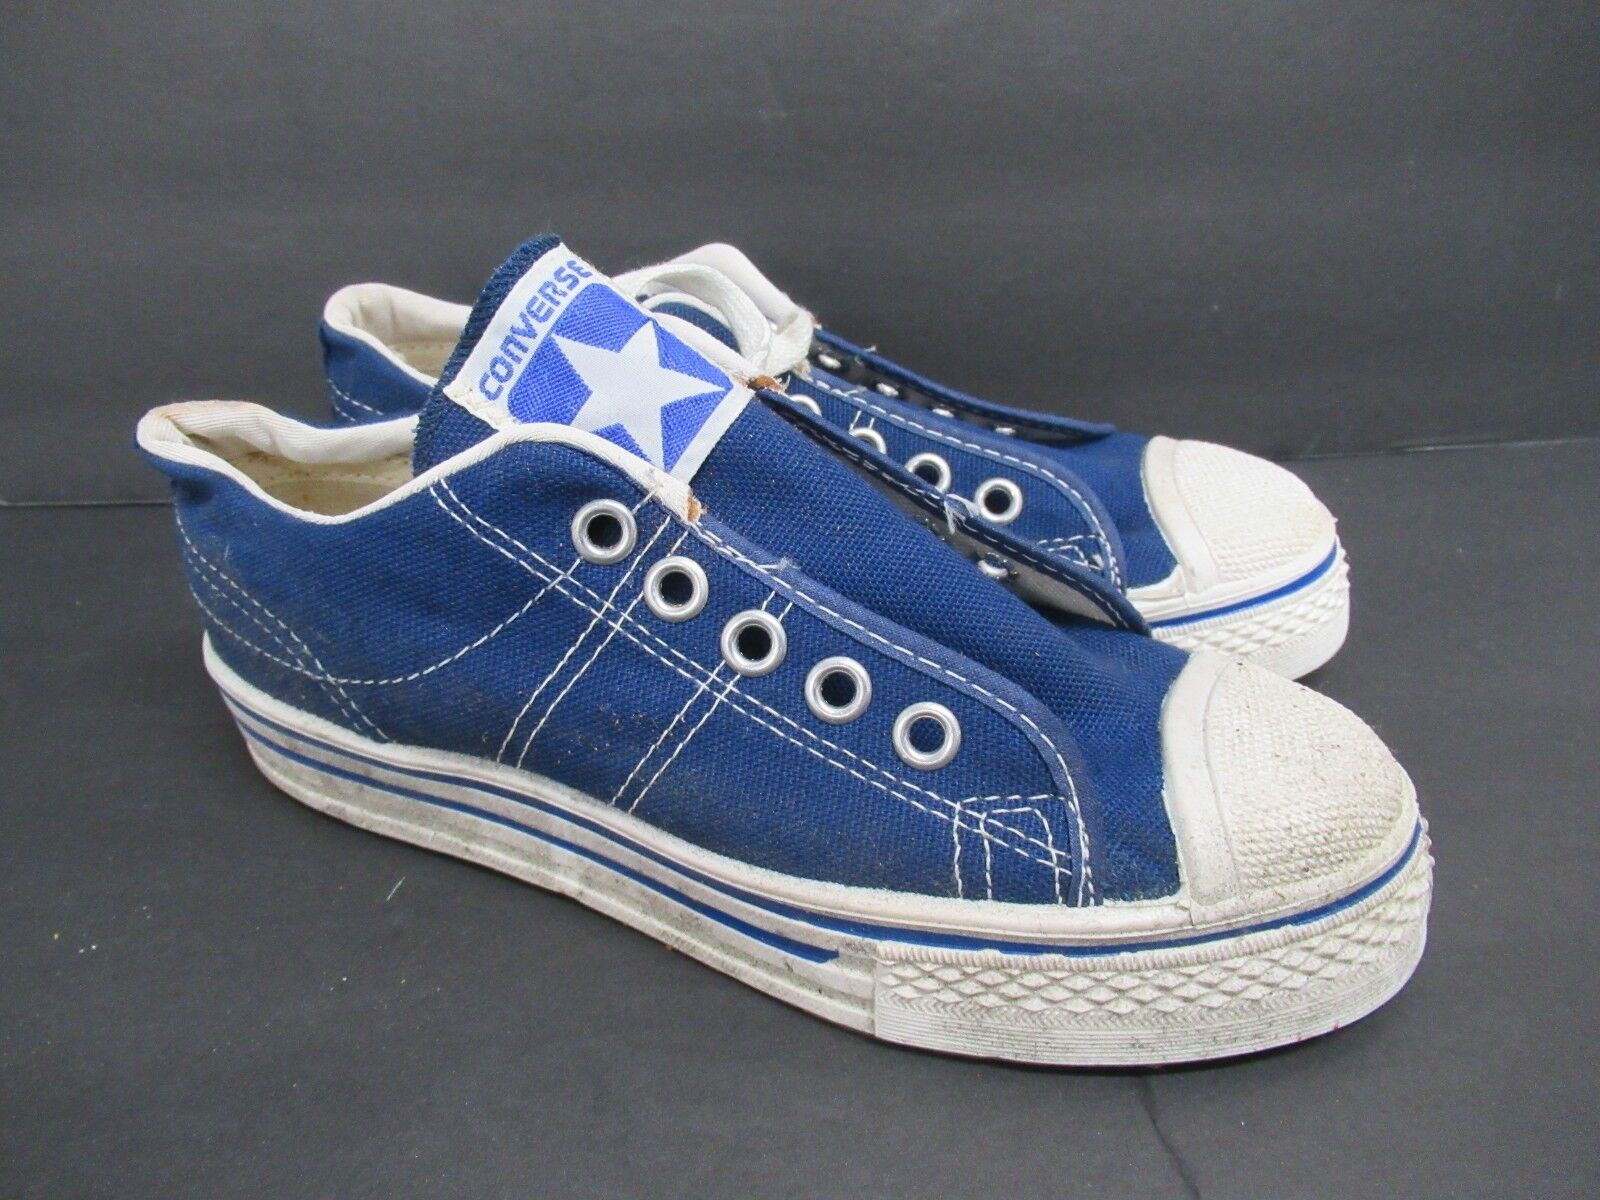 Vintage Retro Converse in bluee Canvas shoes 60s 70s Kids' Size  13.5